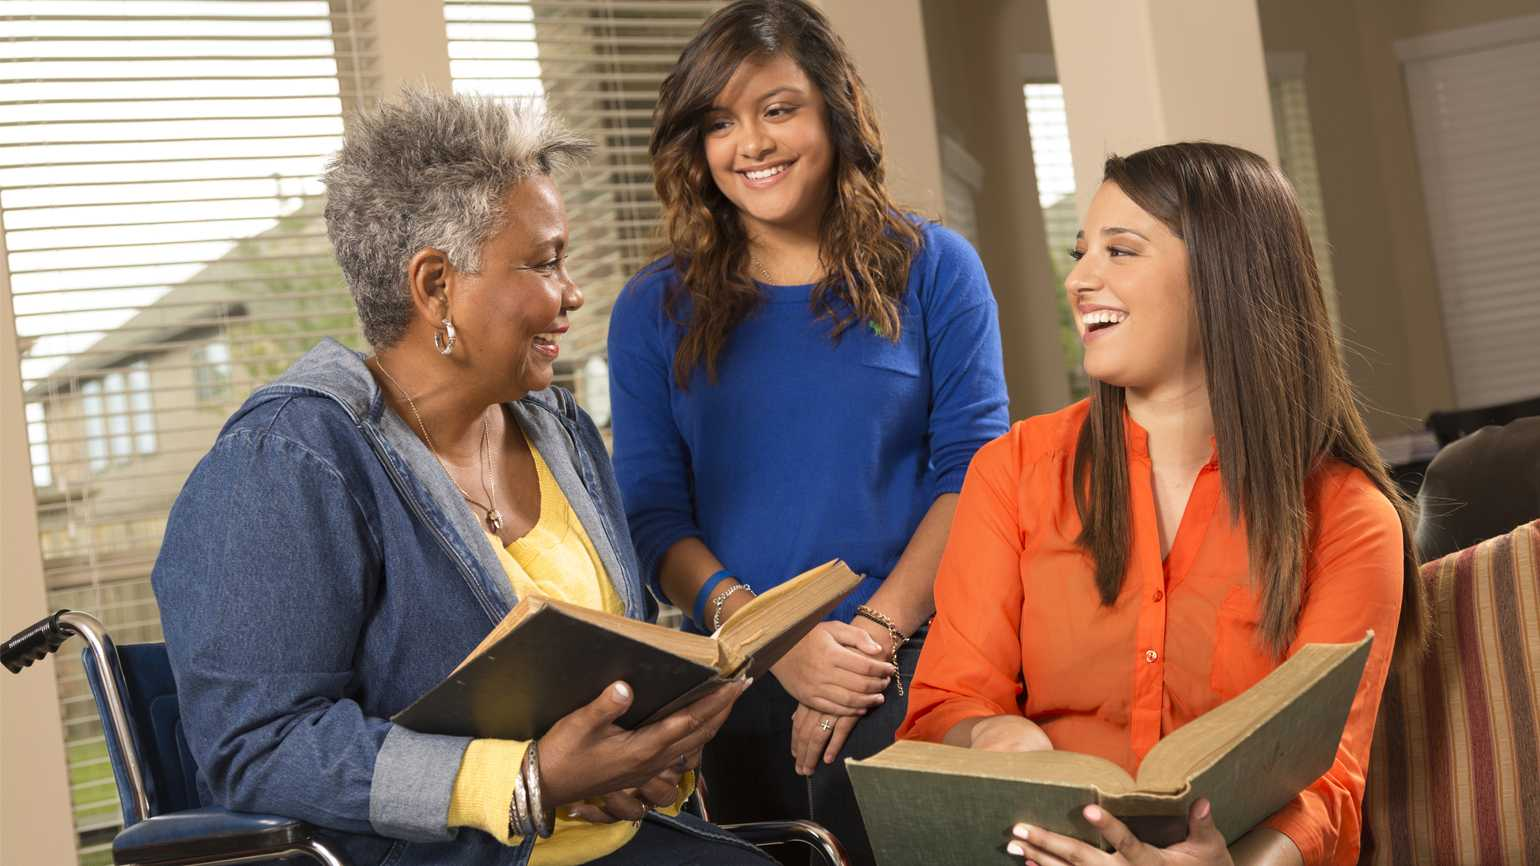 A young caregiver tells a story to a loved one in a nursing home.